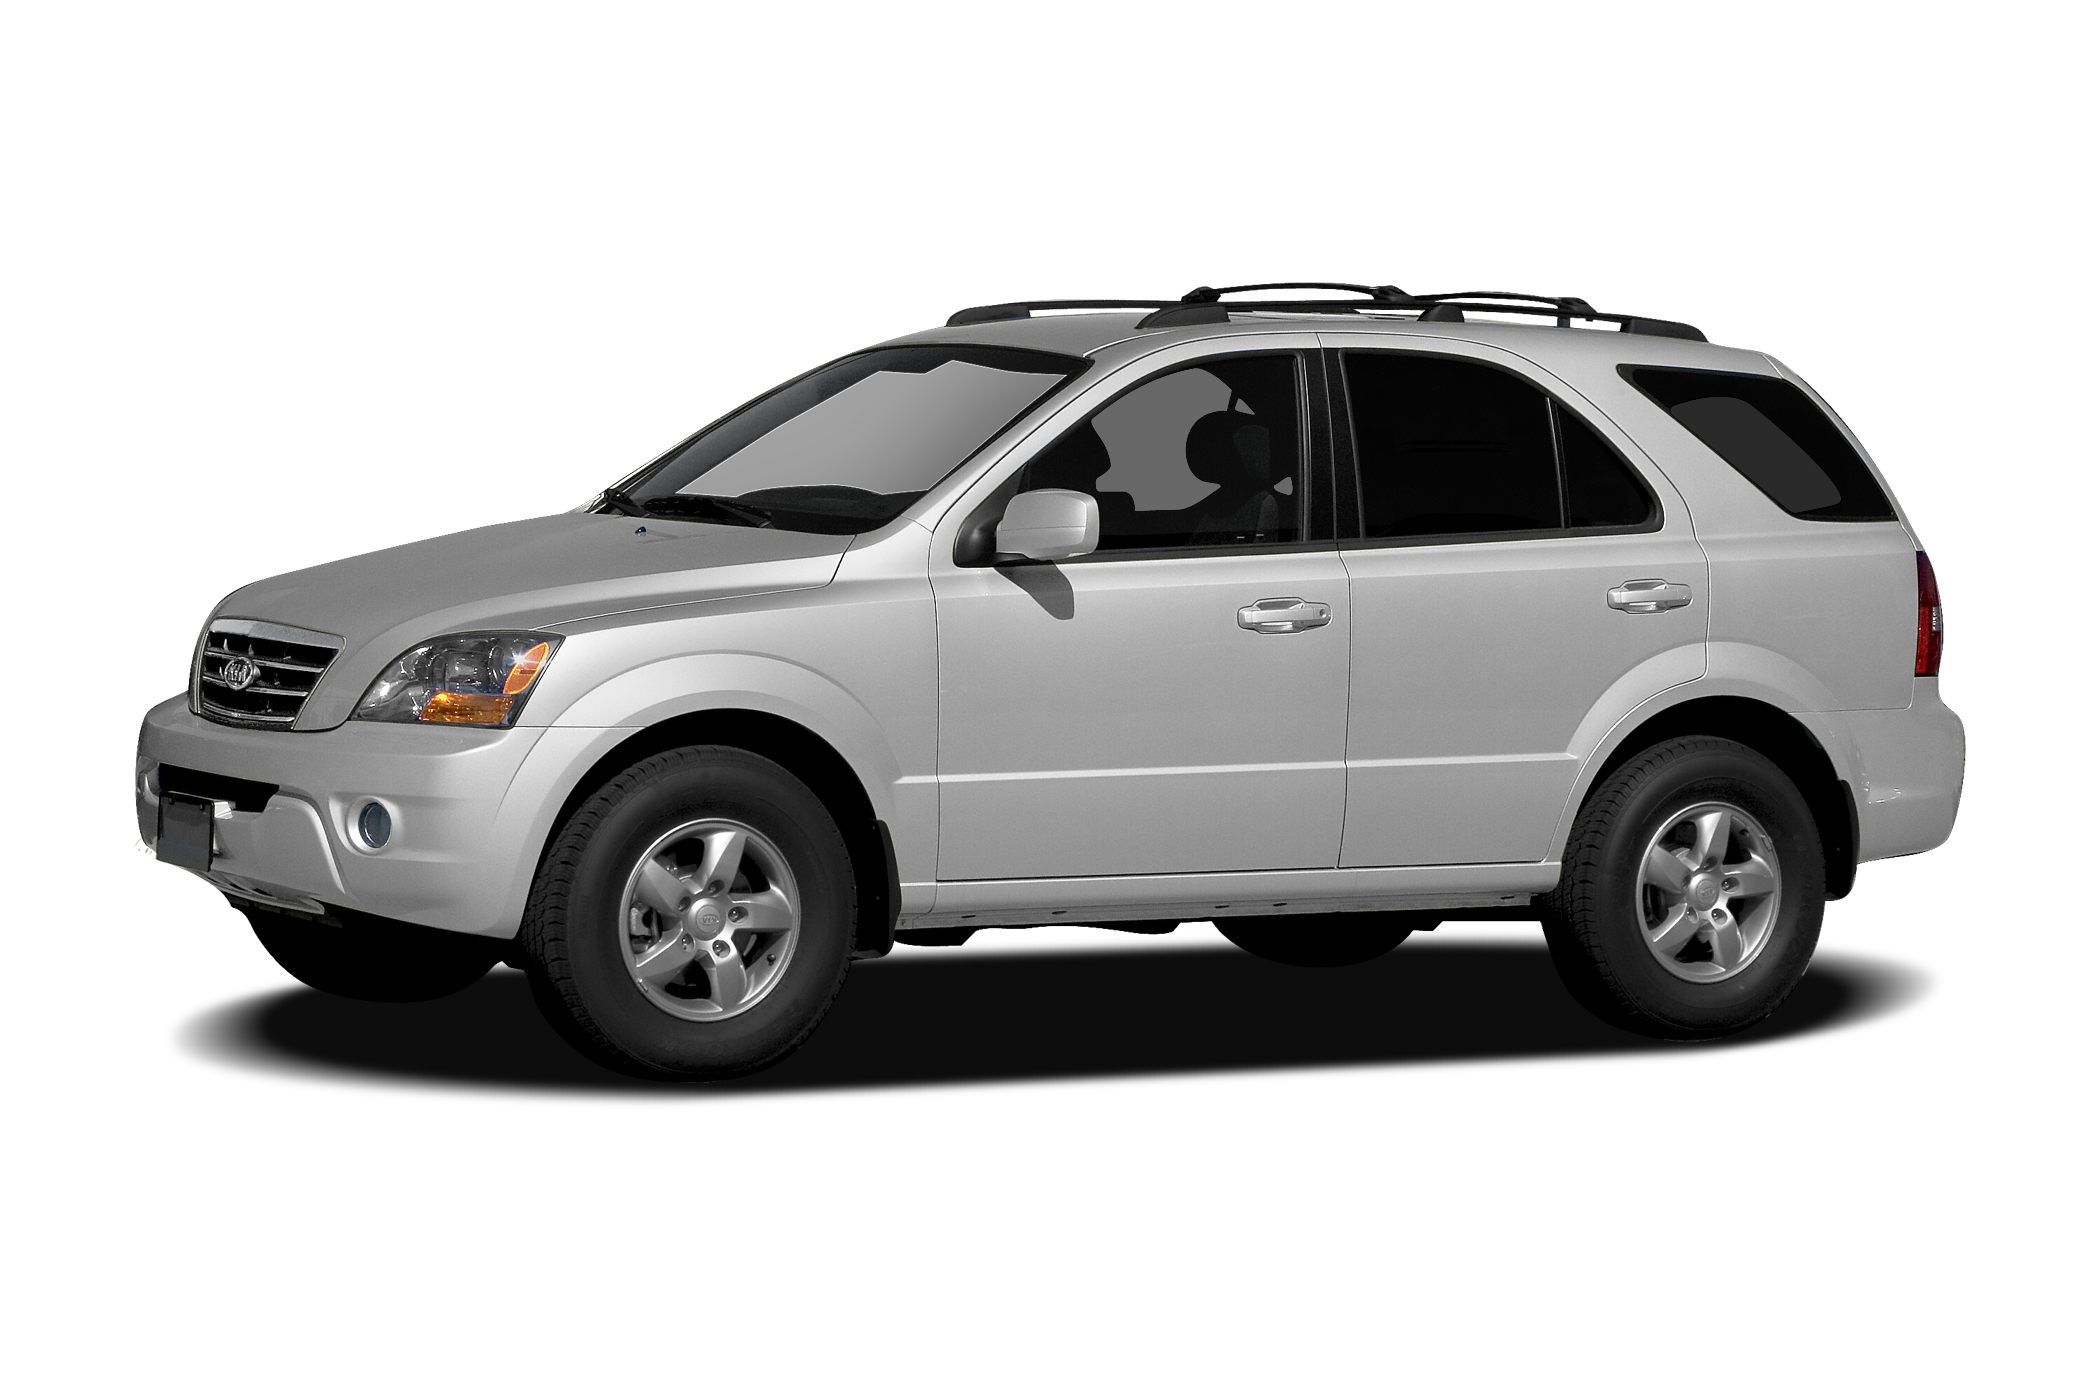 2009 Kia Sorento LX SUV for sale in Nashville for $0 with 99,856 miles